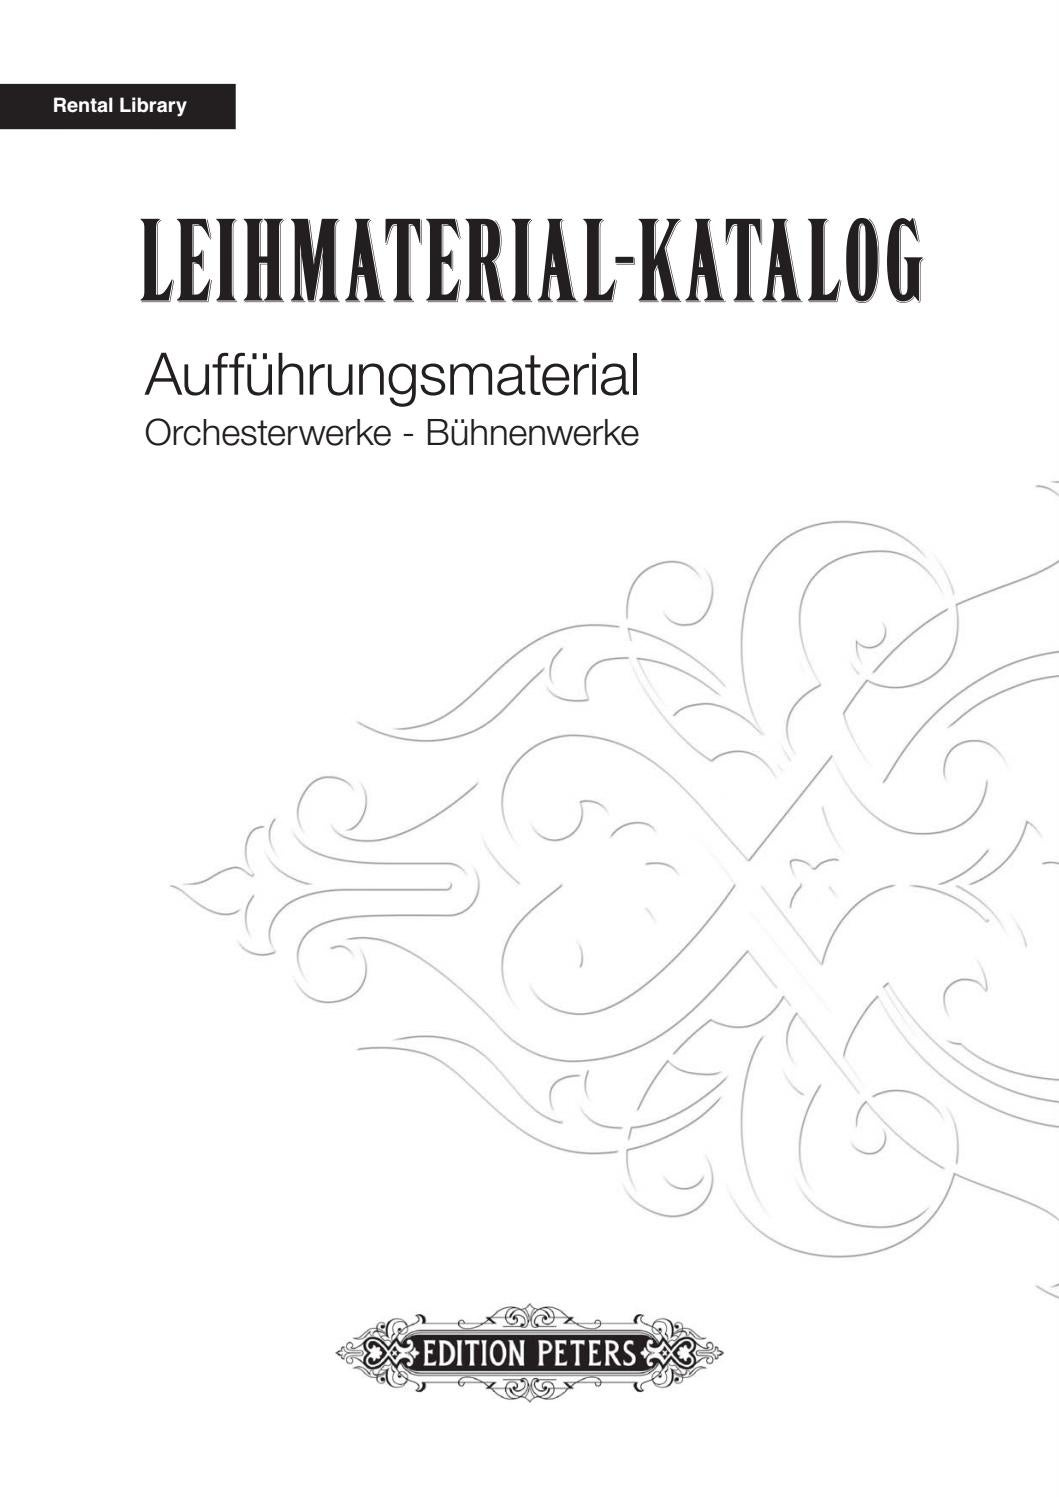 Edition Peters Leihmaterial-Katalog 2017 by Edition Peters - issuu